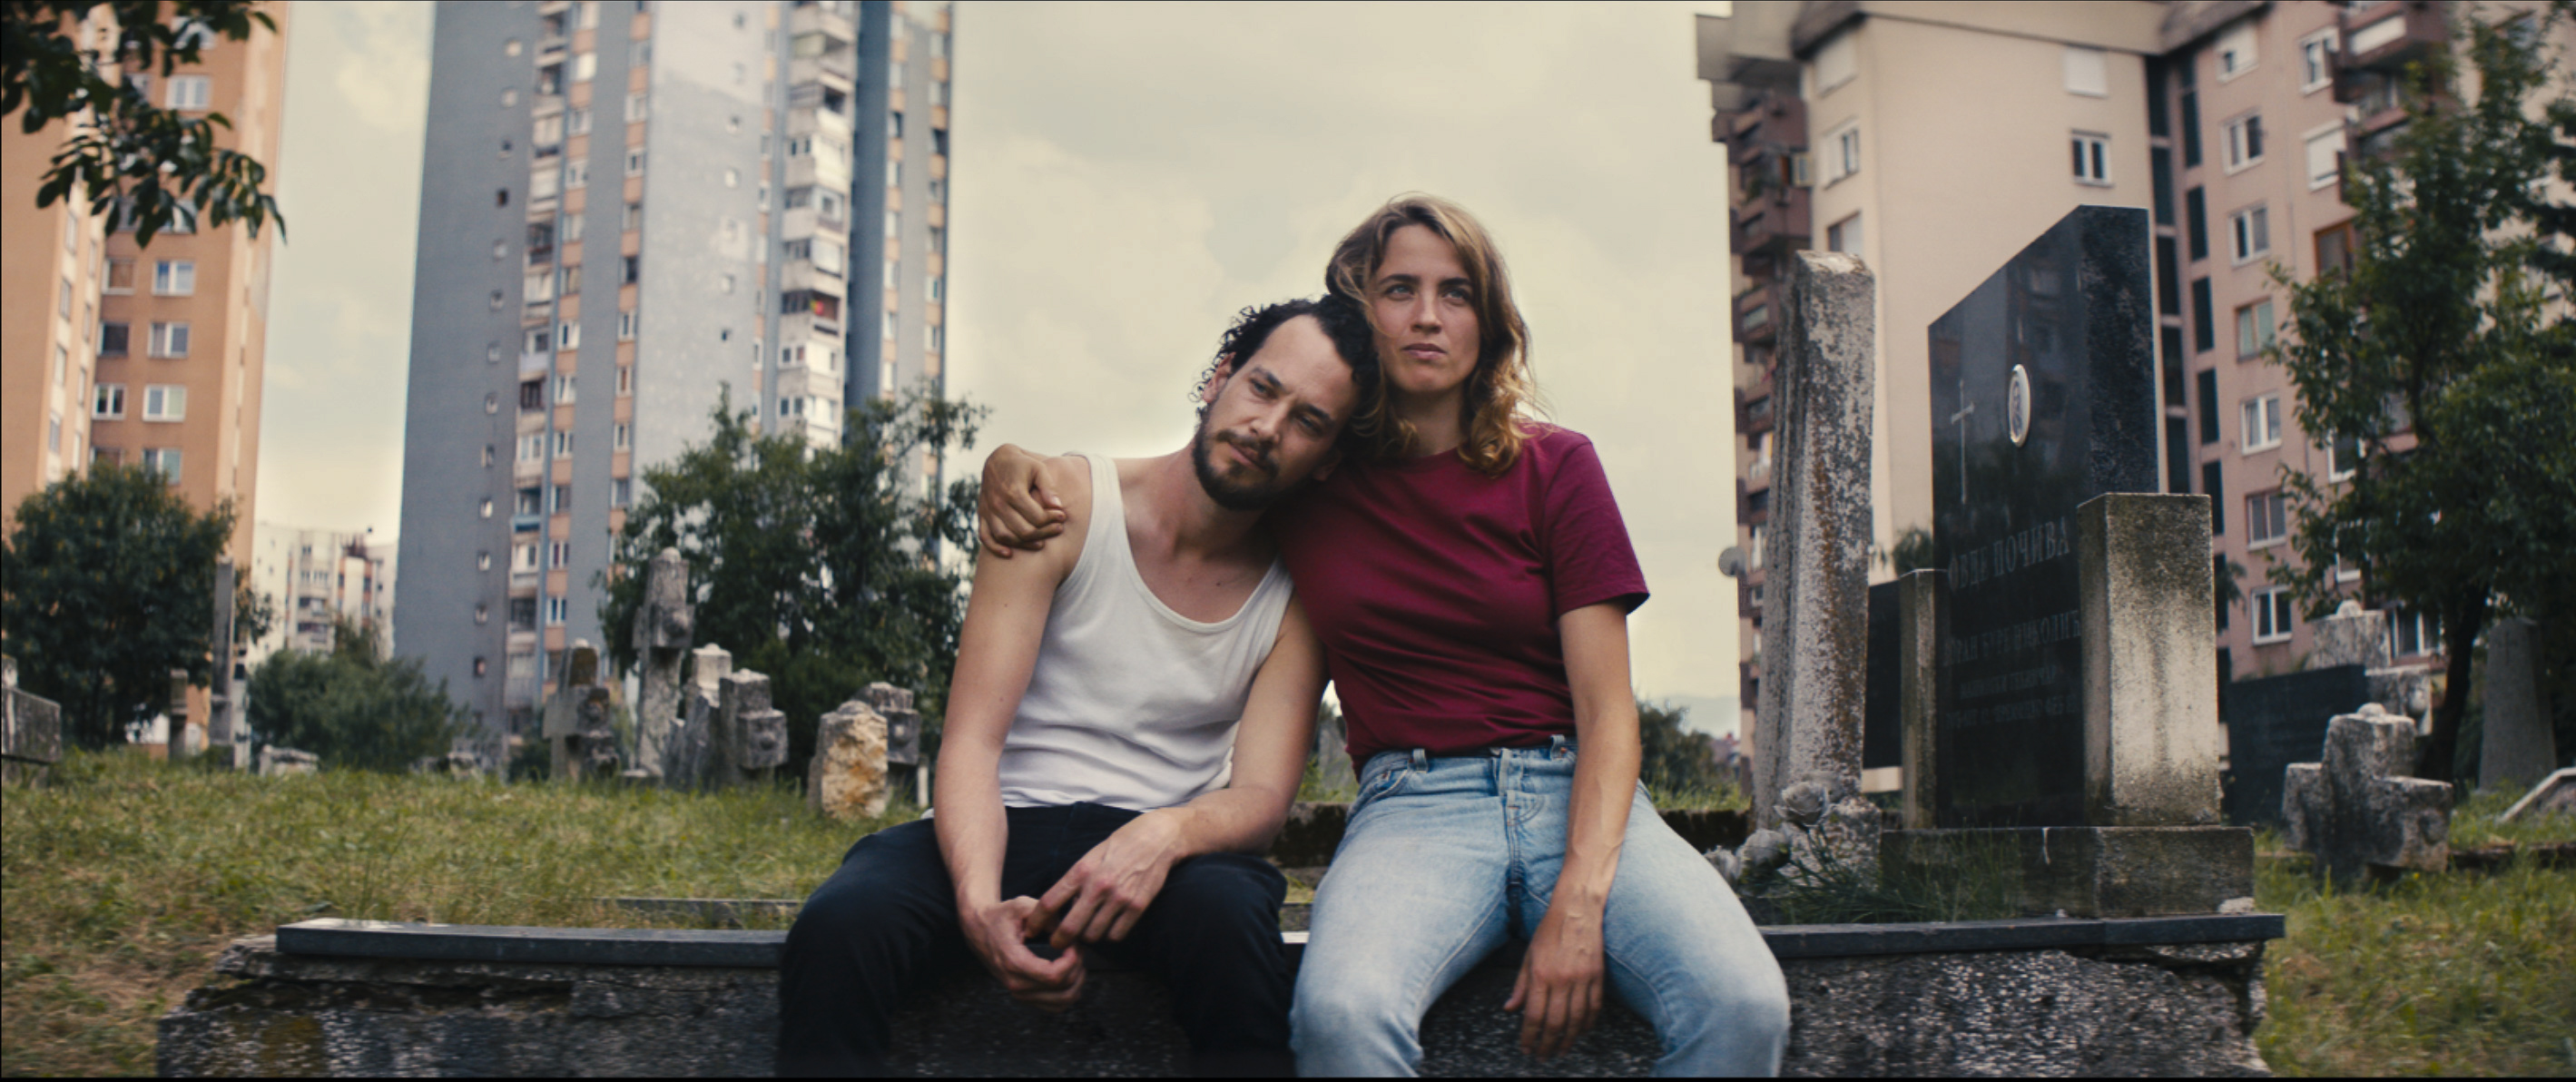 A still from 'Heroes Don't Die' featuring  Adèle Haenel and Jonathan Couzinié